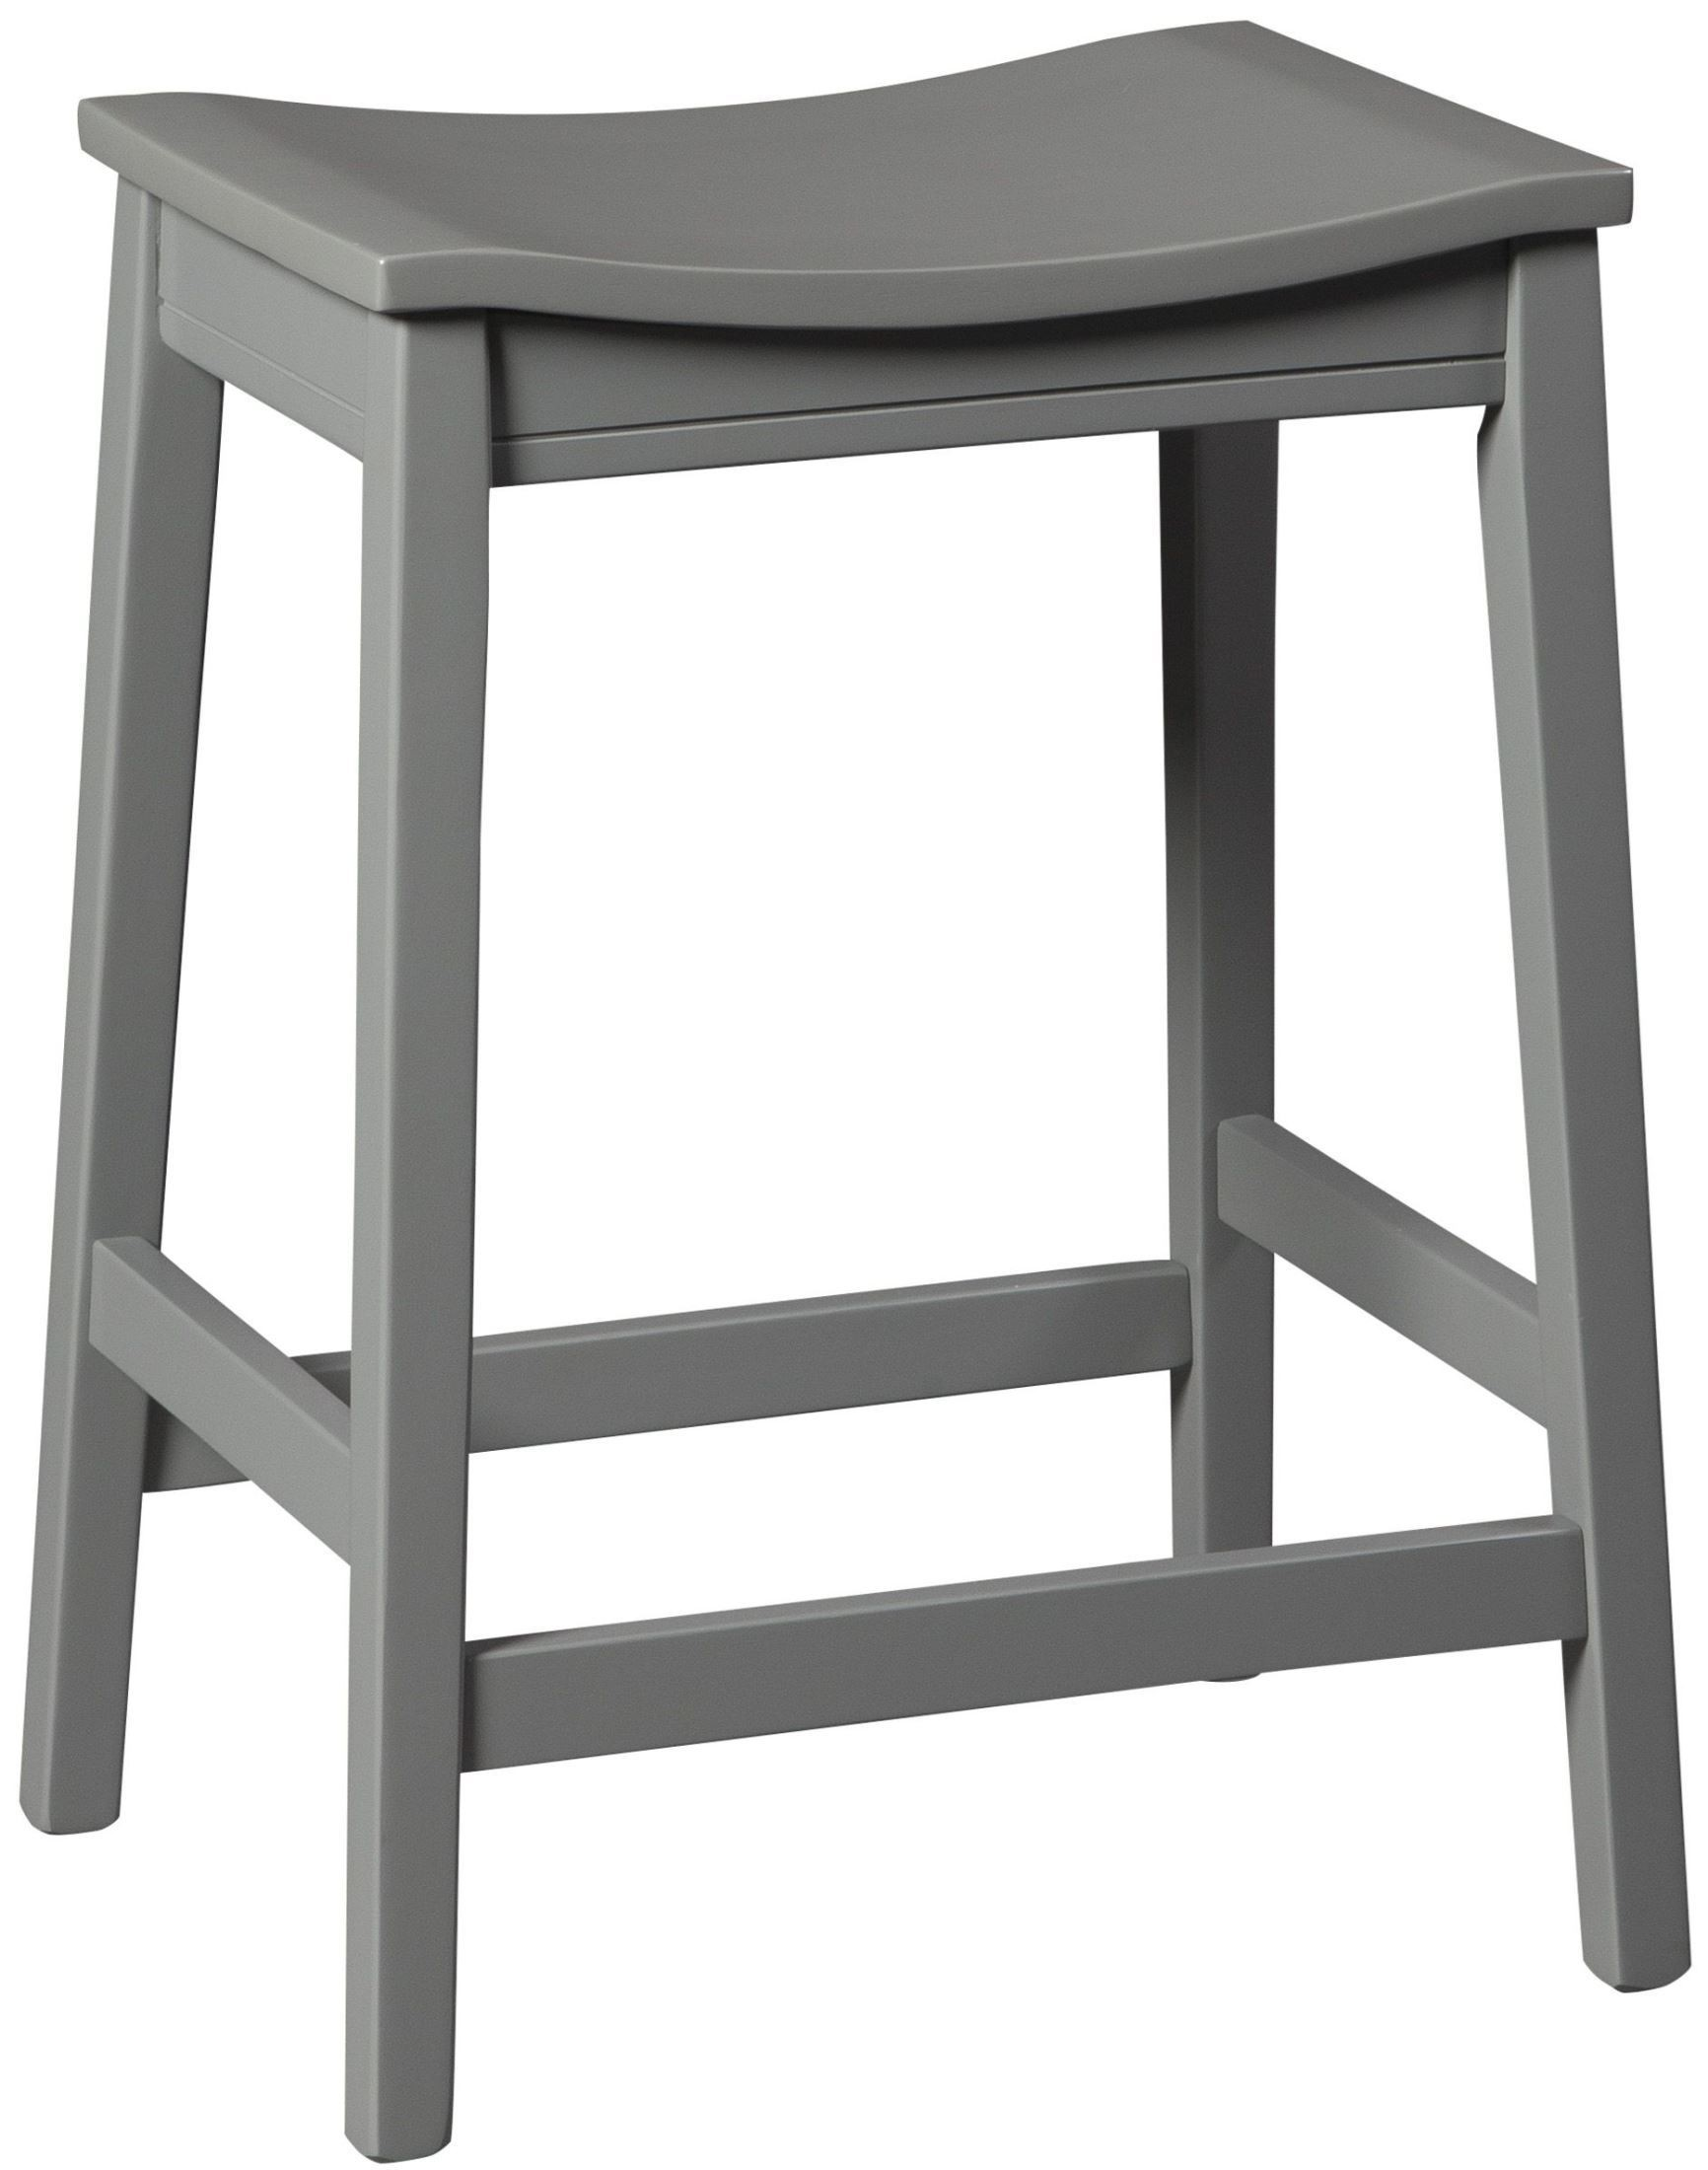 Bantilly Gray Counter Stool Set Of 2 from Ashley D389  : d389 0324 sw from colemanfurniture.com size 1732 x 2200 jpeg 268kB